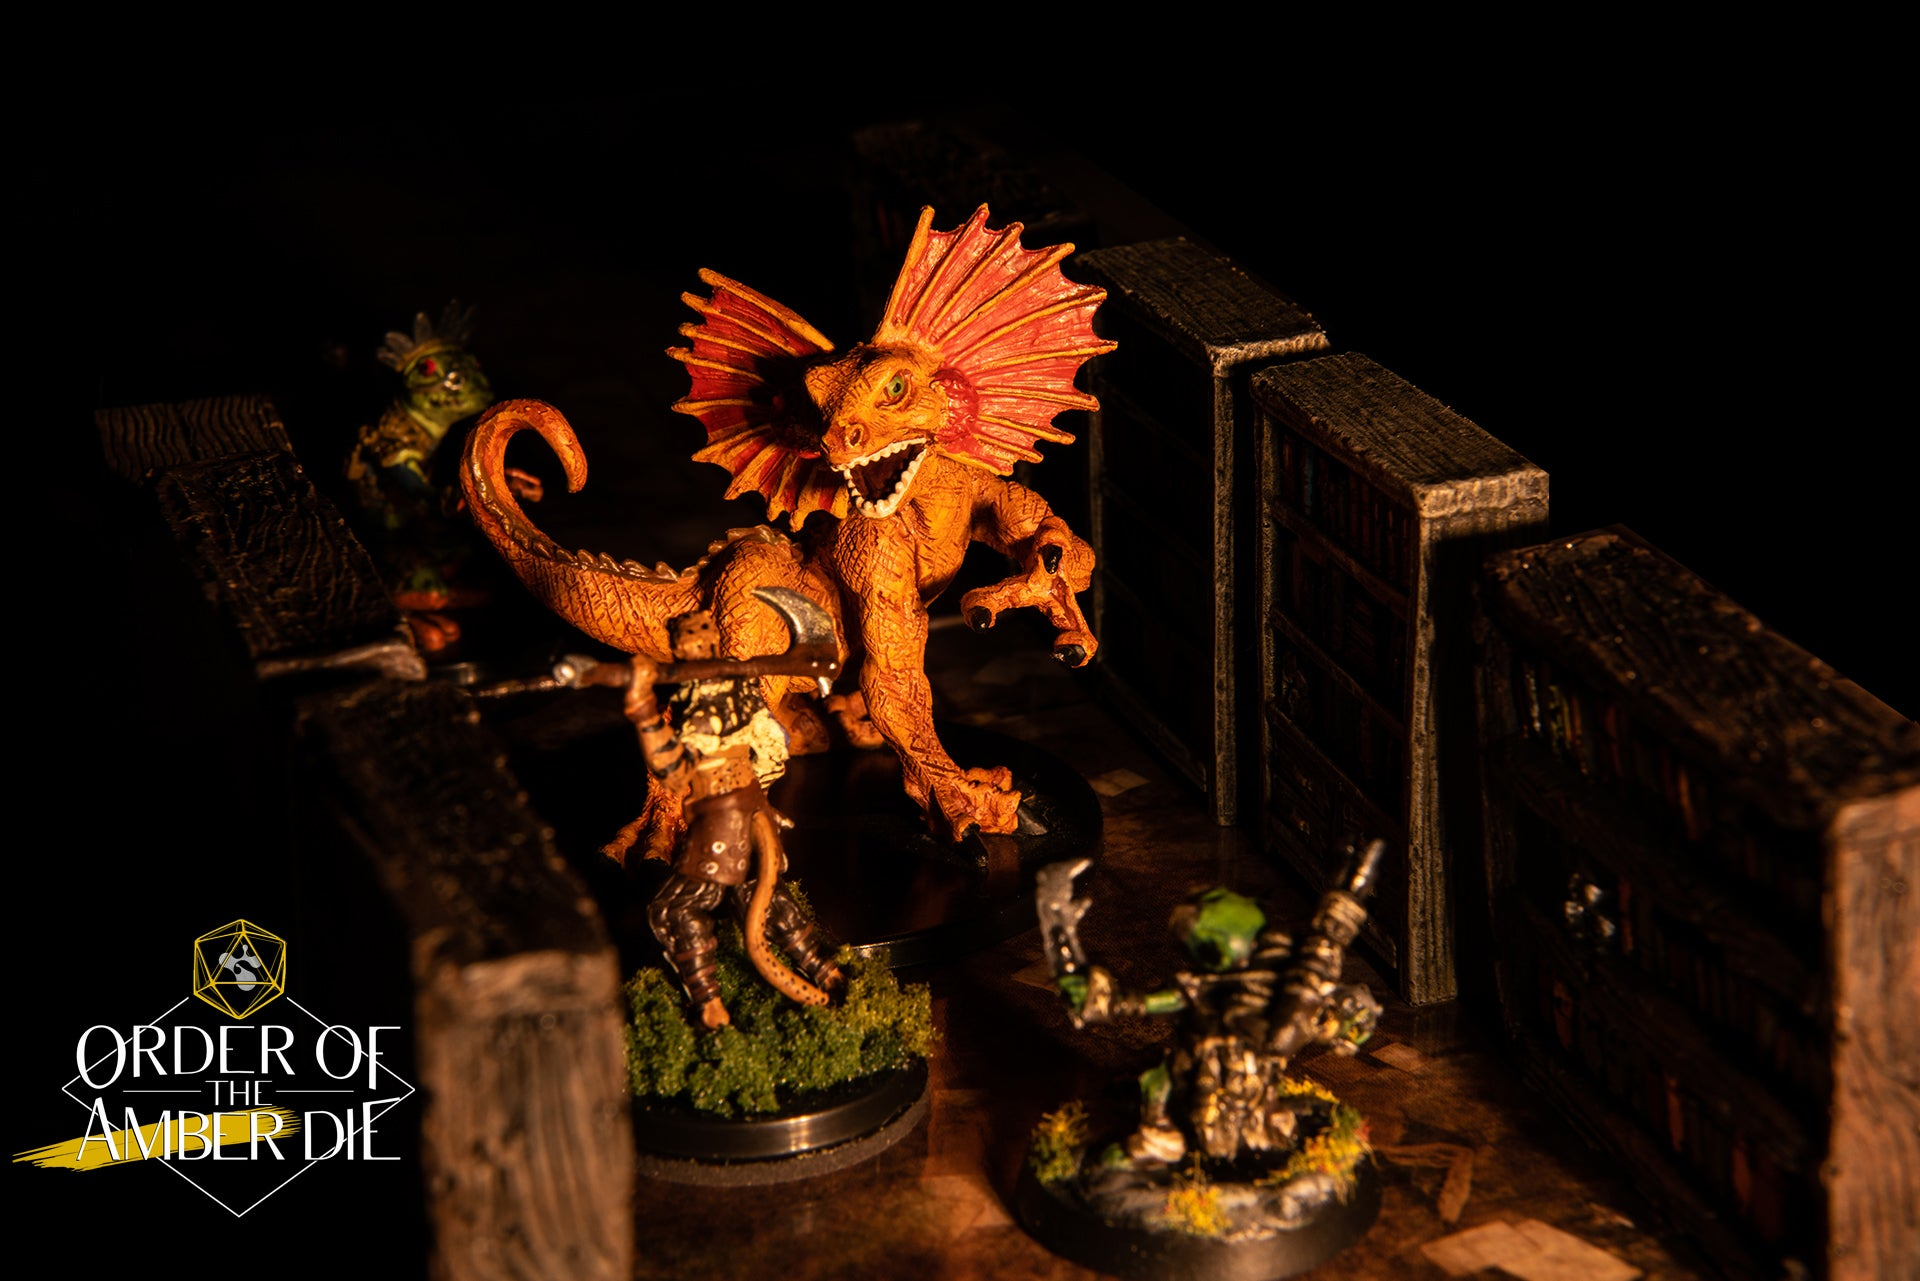 A mini figure large lizard-like creature stands over our players' figures, standing out ominously in the torchlight